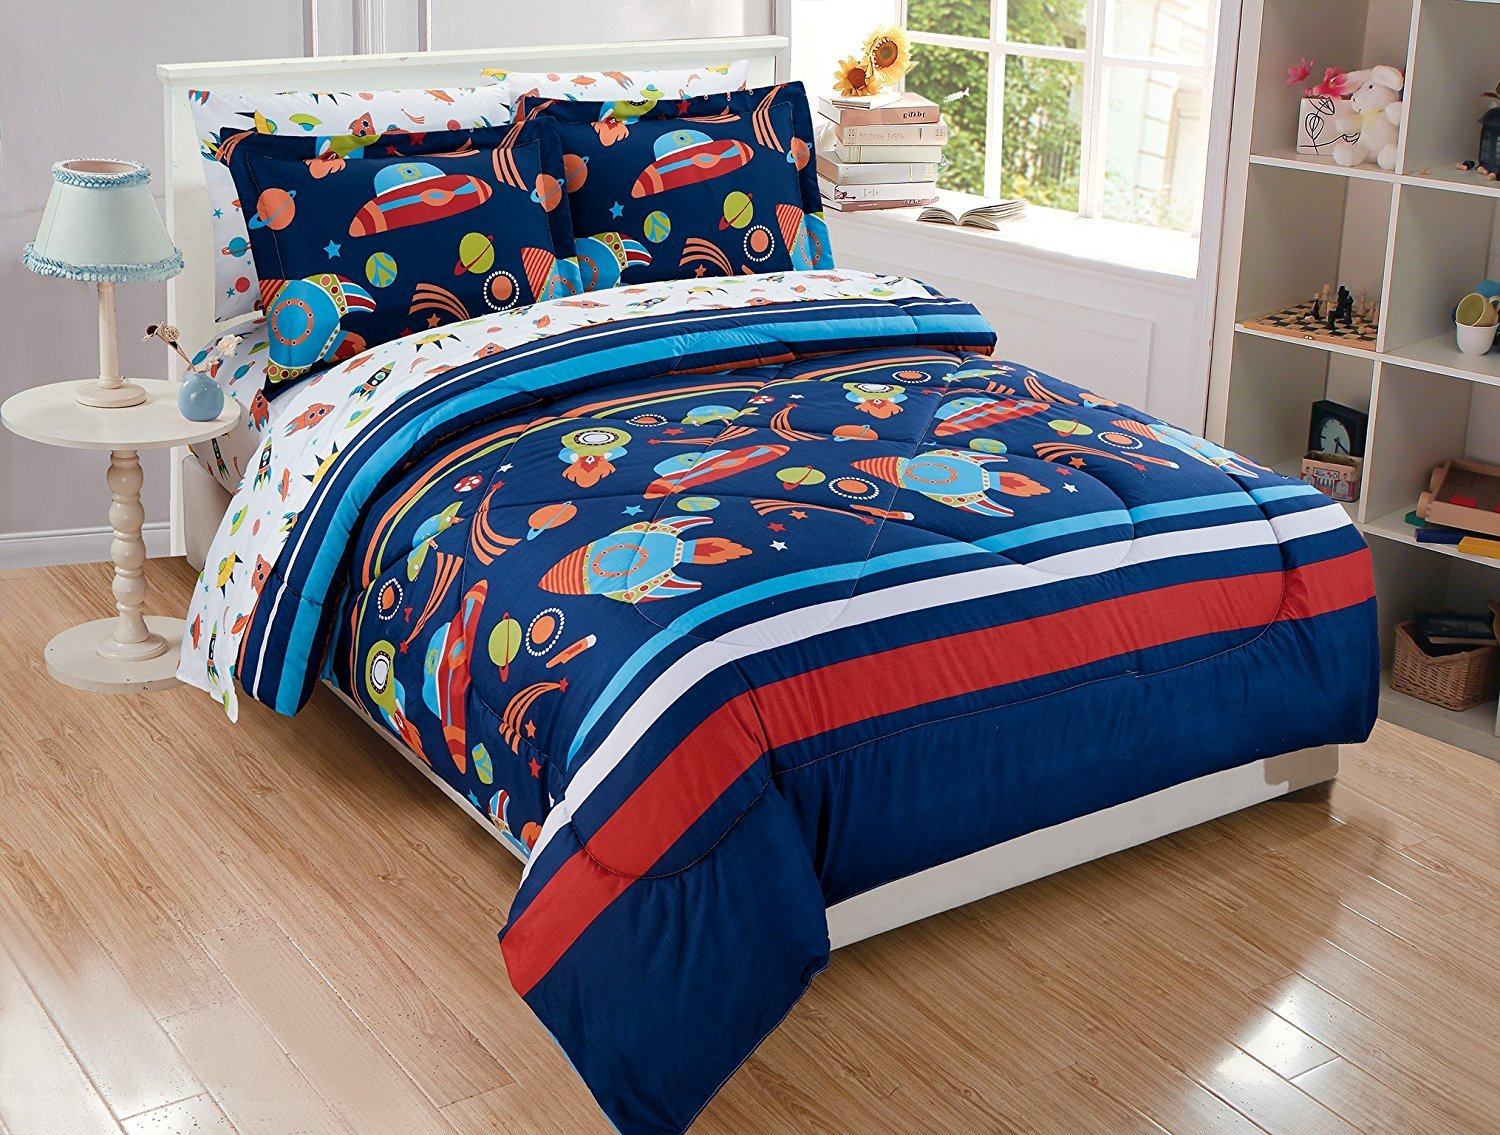 Elegant Home Multicolor Solar System With Space Ships & Rockets Universe Galaxy Stars Design 7 Piece Full Size Comforter Bedding Set for Boys/Kids Bed In a Bag With Sheet Set # Solar (Full Size)